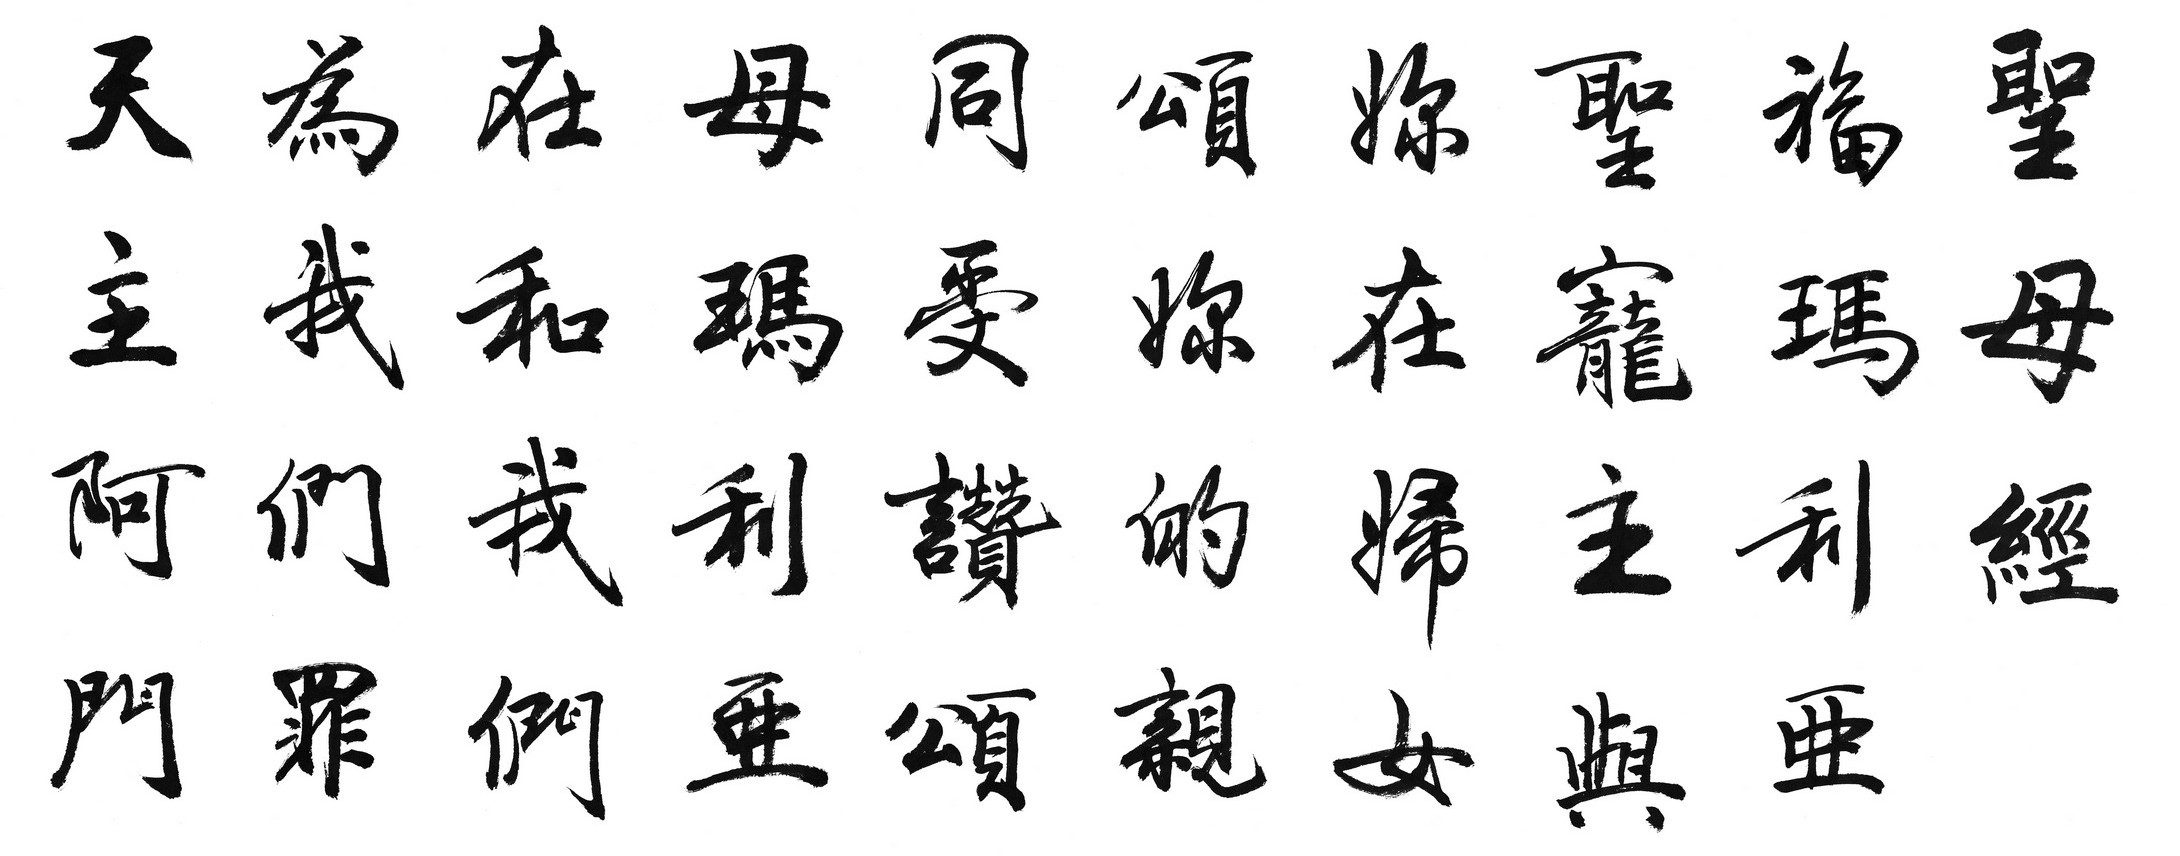 This is an image of Chinese characters that students need to master to be able to fluently understand the language.